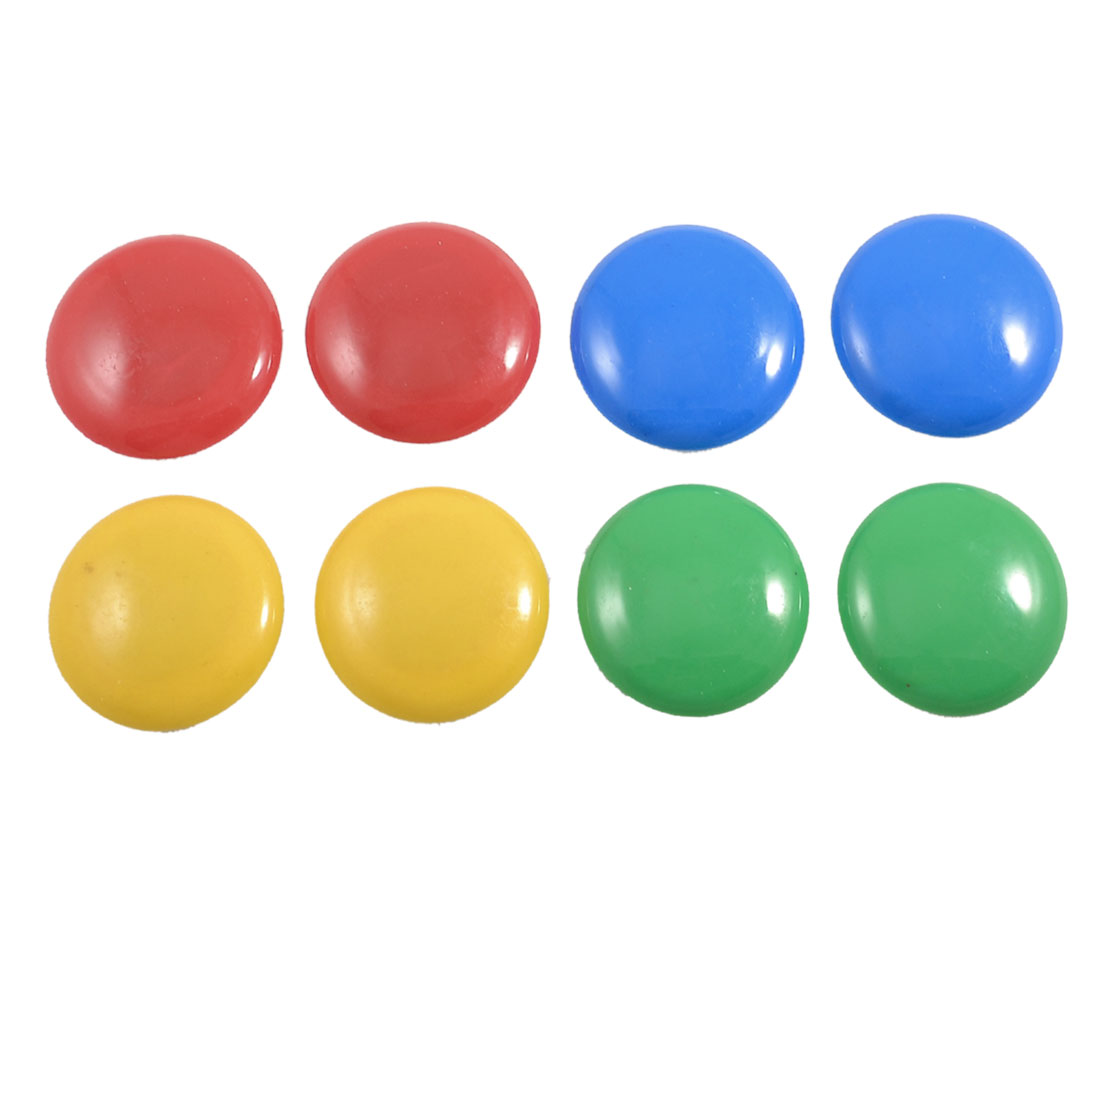 8 x 39mm Dia Round Plastic Shell 4 Colors Refrigerator Magnets